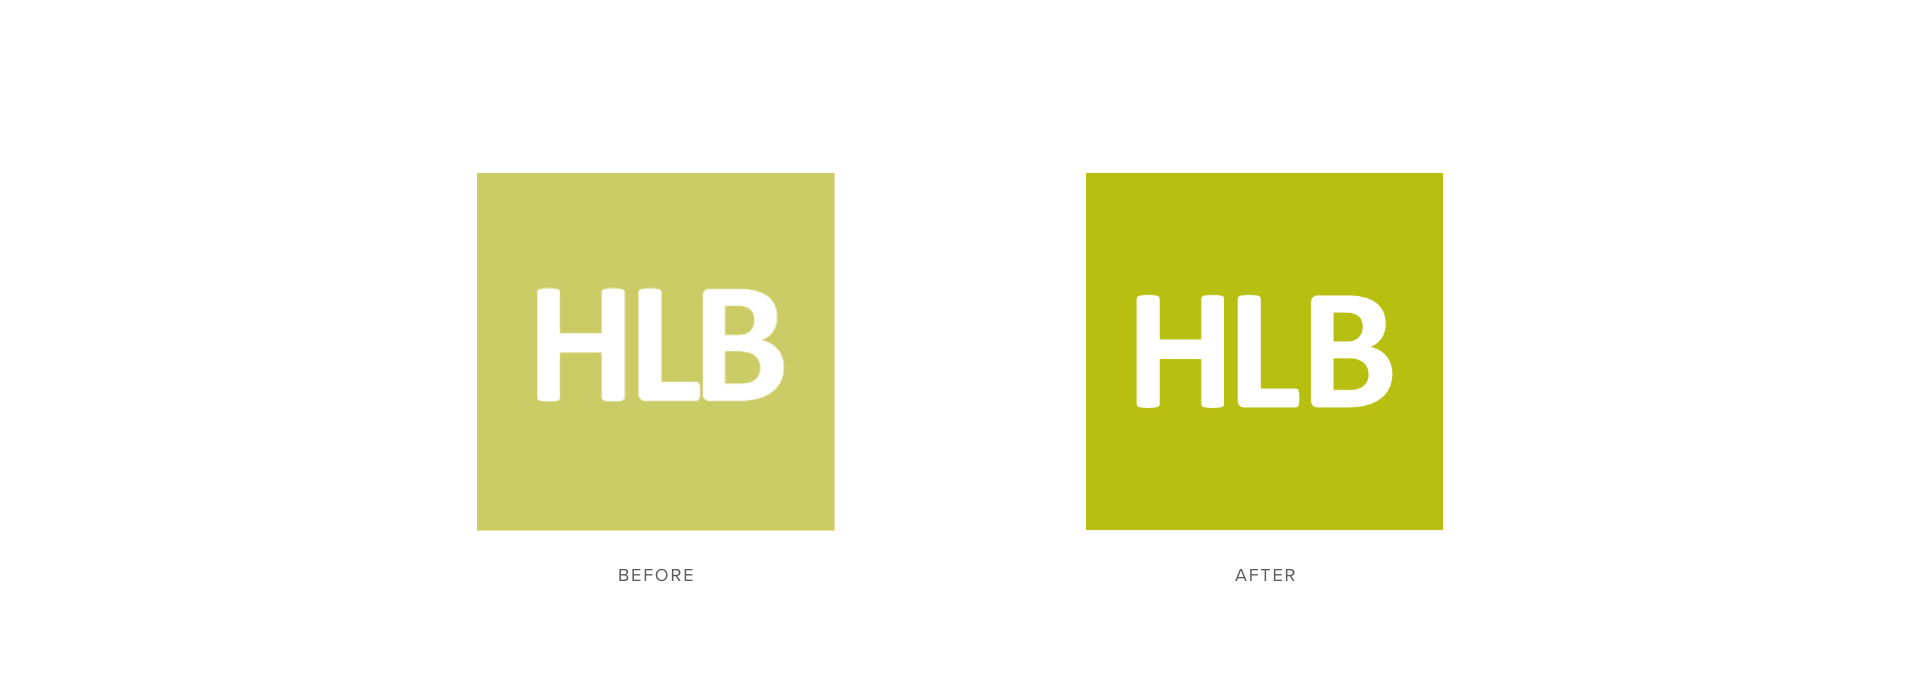 HLB Logo Before and After